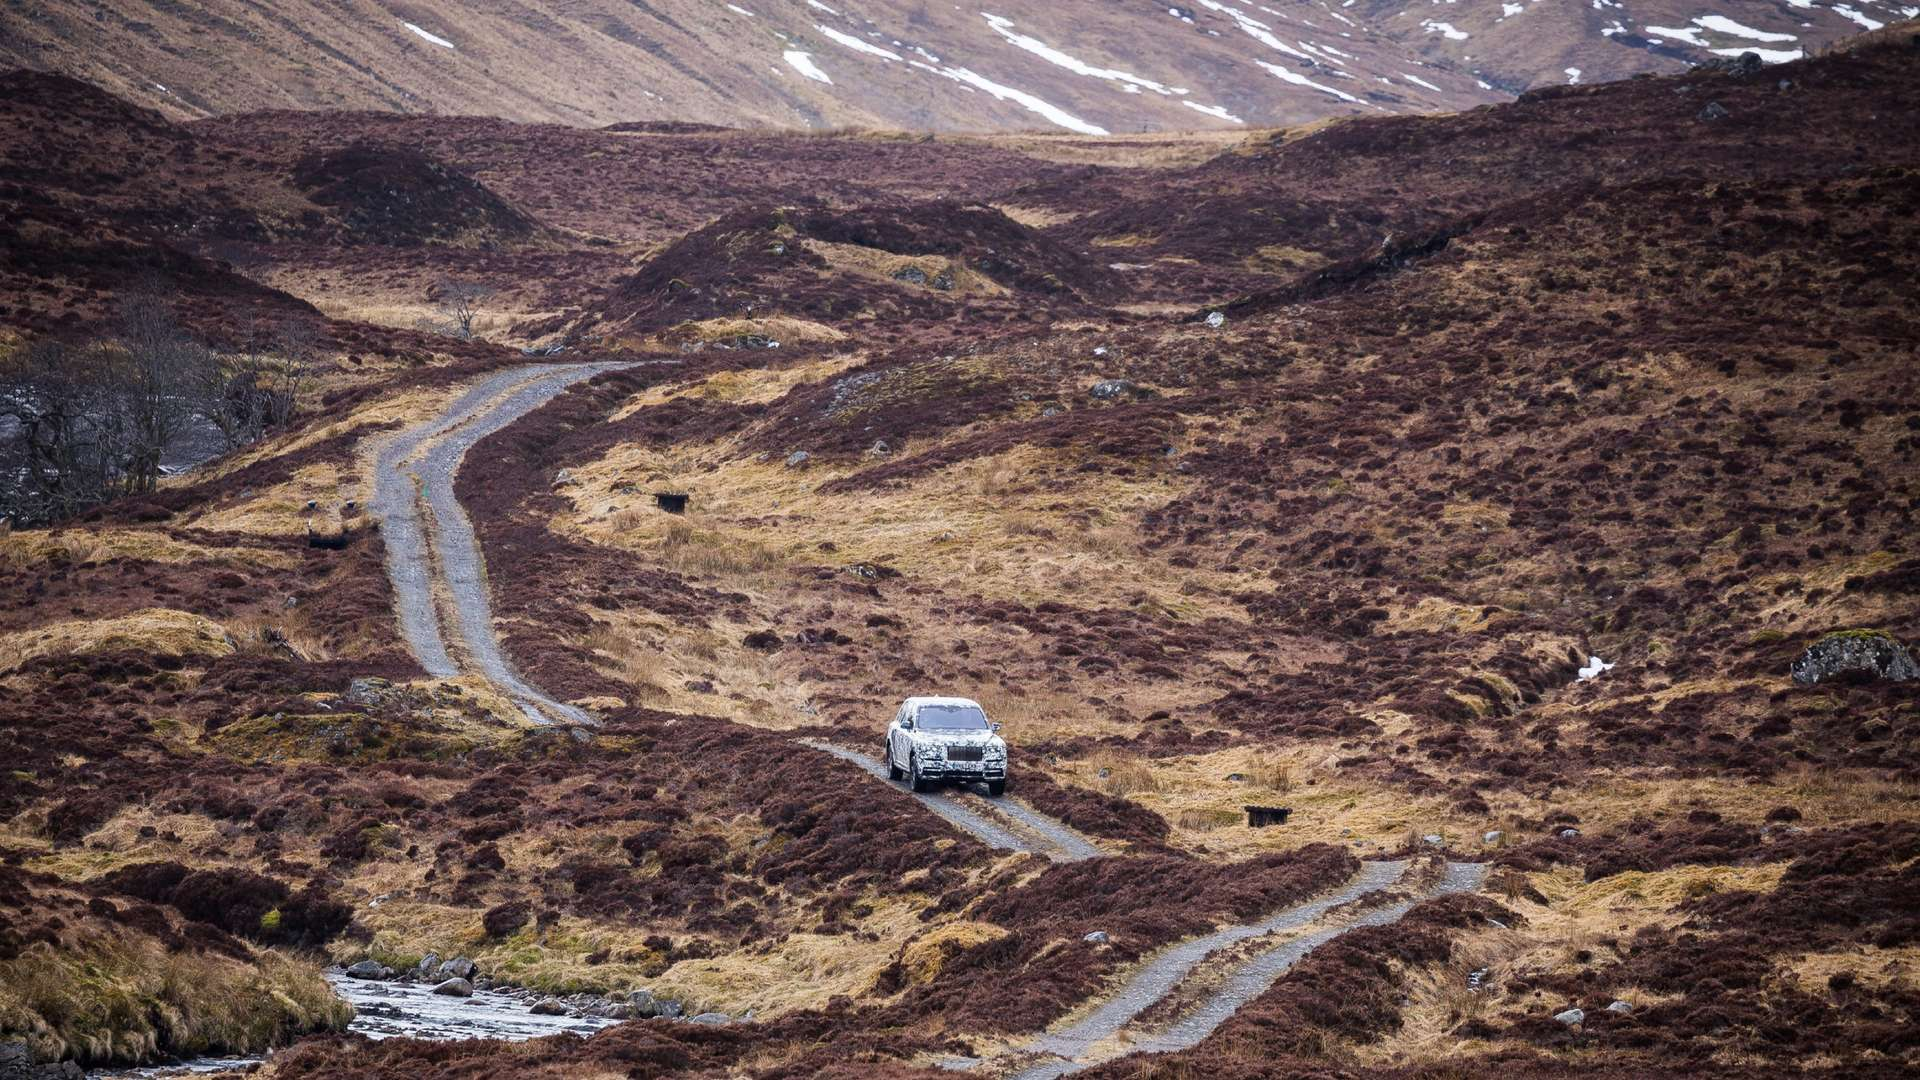 A mountainous landscape with a dirt road running through it. The Rolls-Royce Cullinan drives down this terrain.